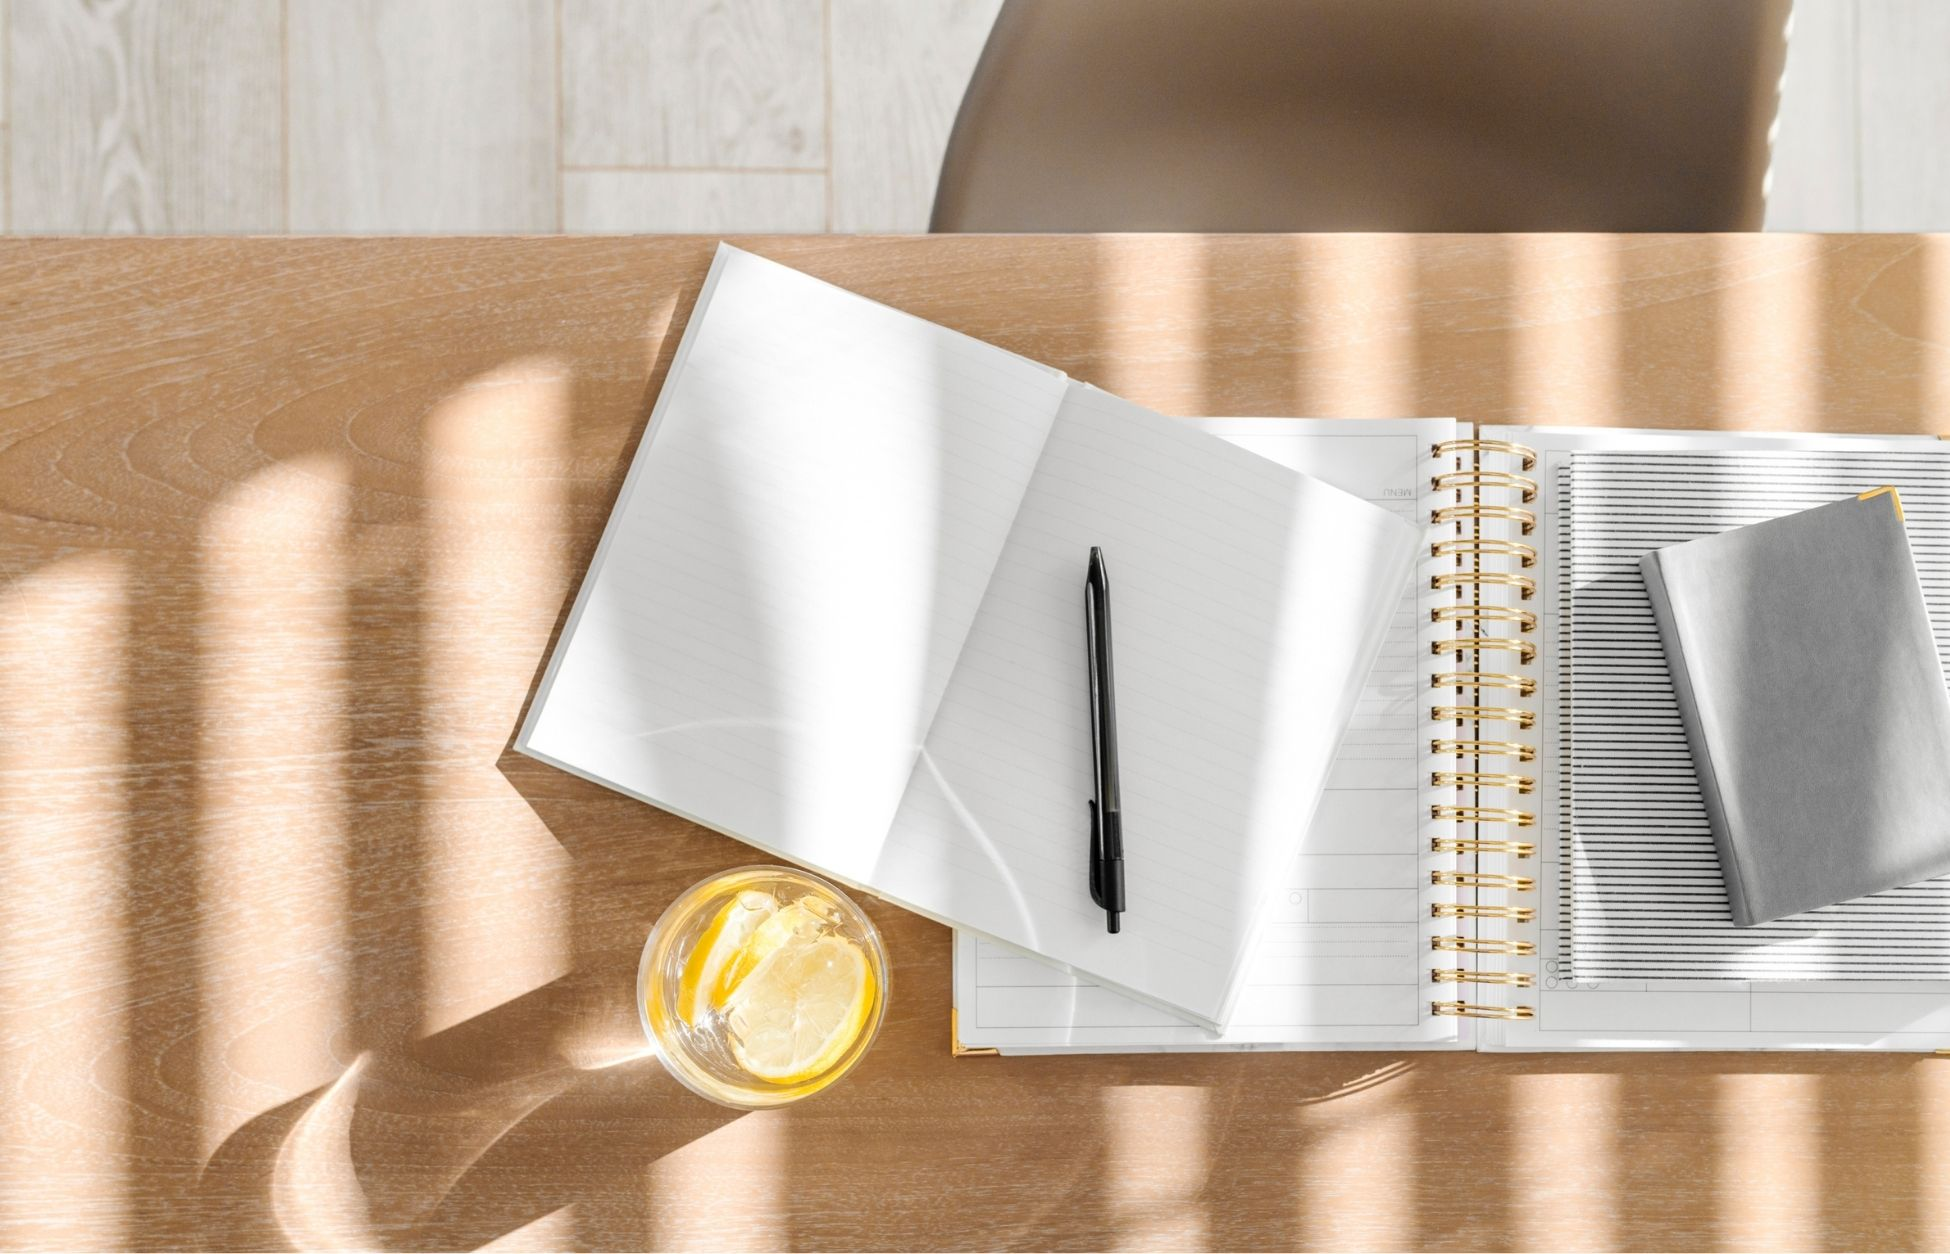 : a sunny desk with open blank notebooks, a pen and a glass of lemon water